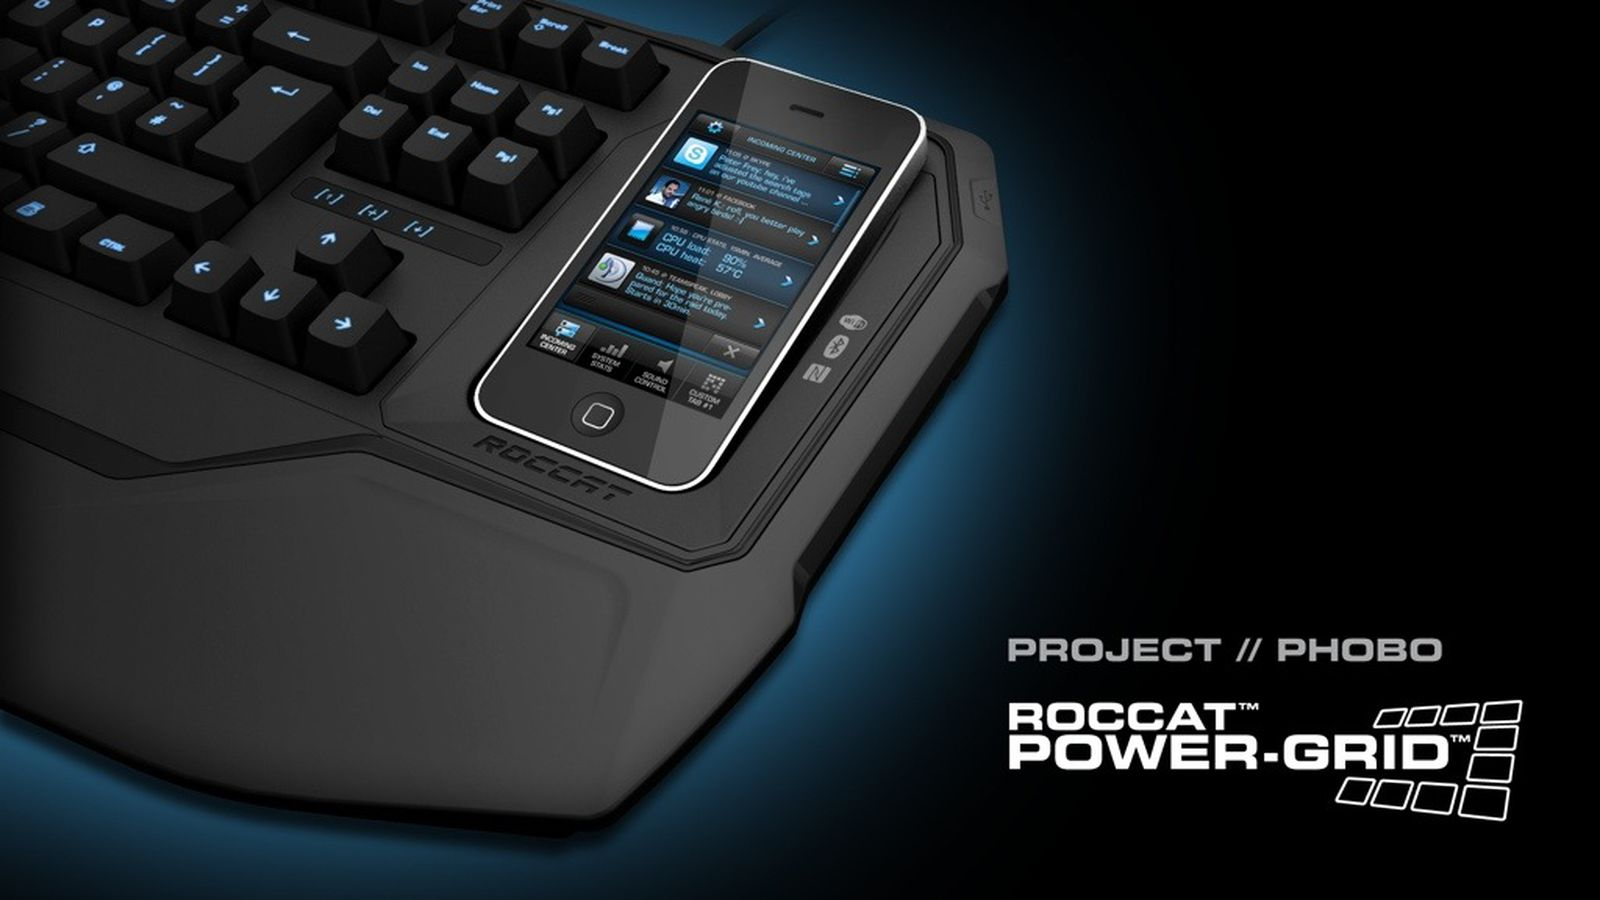 Aviation Wallpaper Iphone X Roccat Power Grid Turns Your Smartphone Into A Secondary